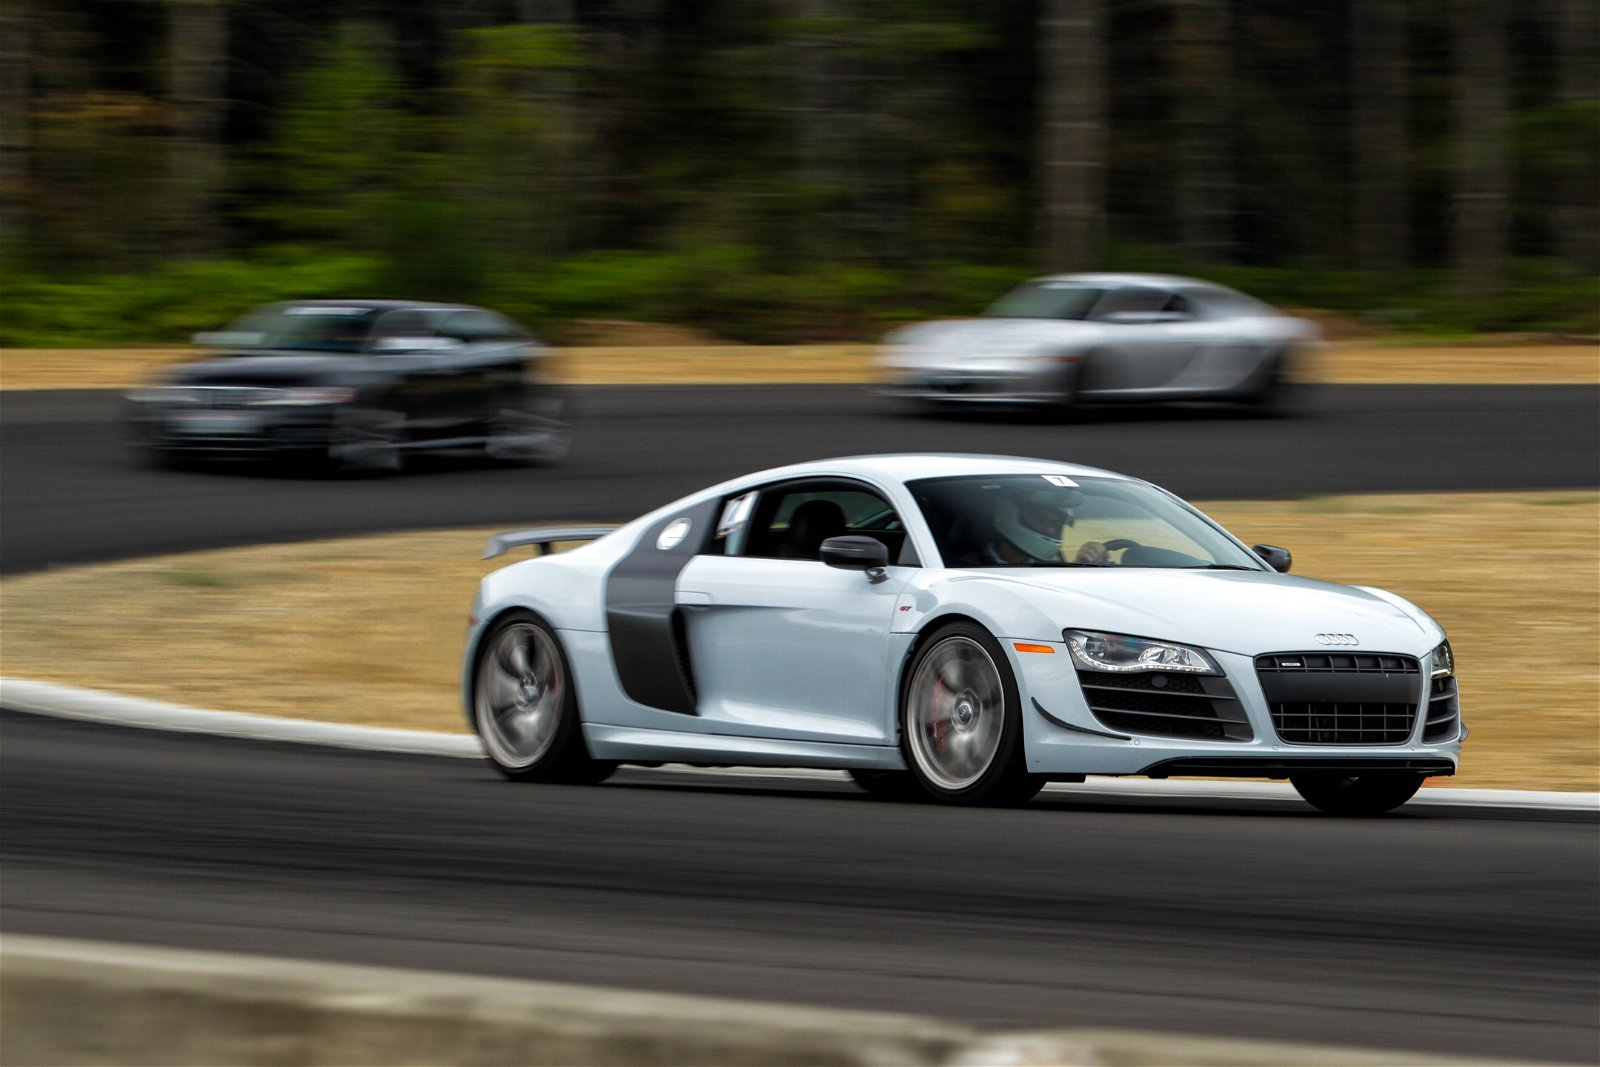 Photo of an Audi car on the road